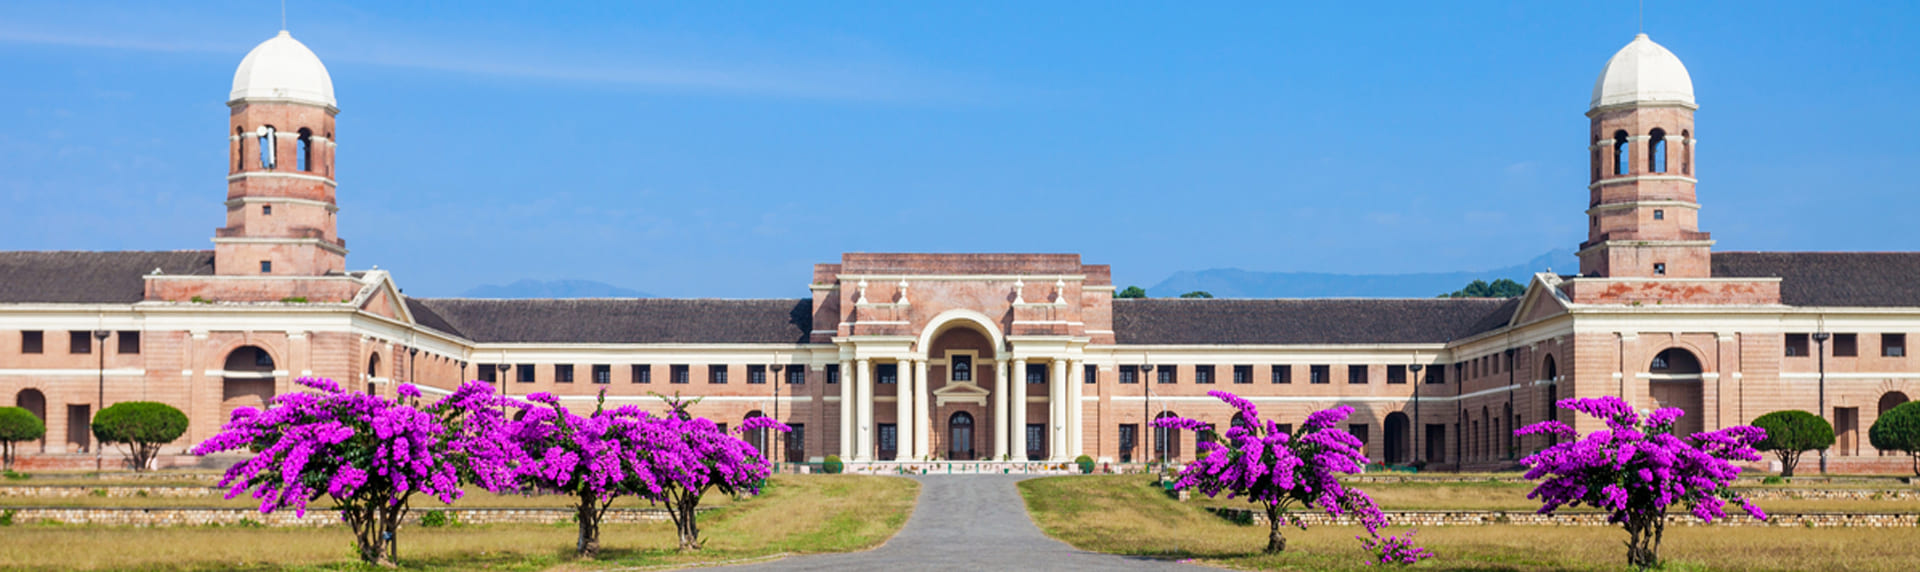 FRI Dehradun forest research institute is located in capital of Uttarakhand Dehradun